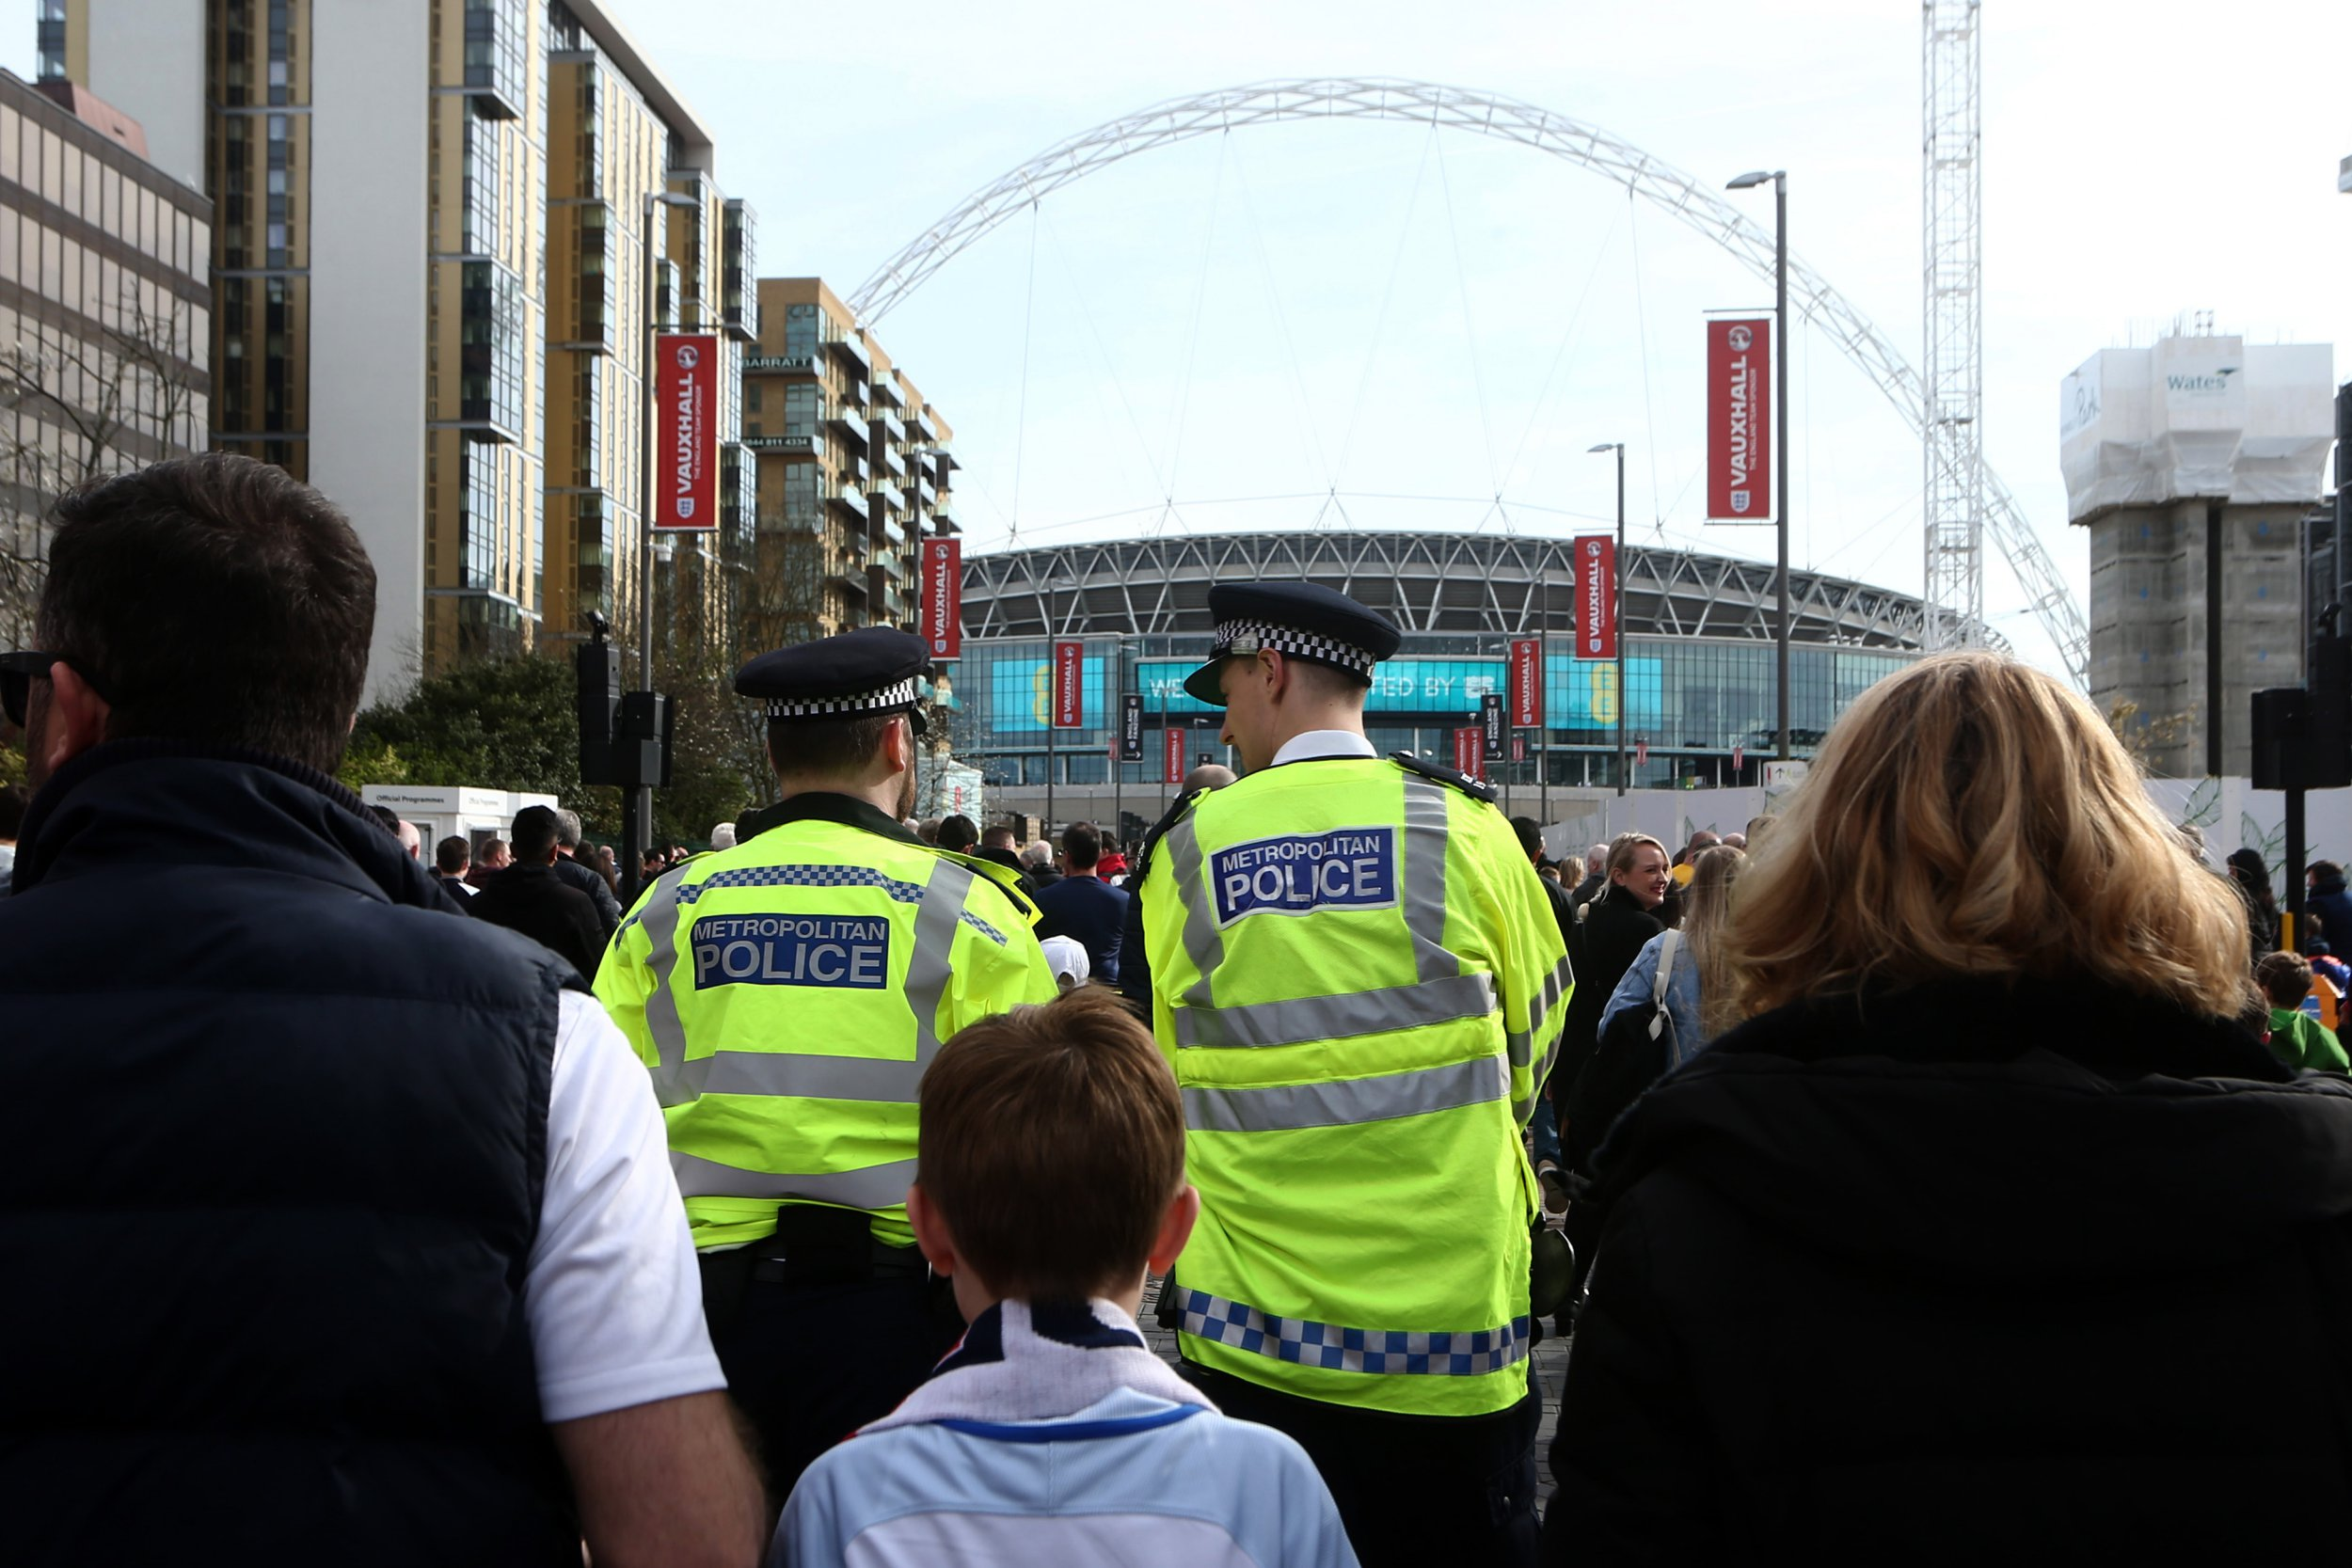 LONDON, ENGLAND - MARCH 26: Police officers patrol amongst the fans making their way to Wembley stadium ahead of the FIFA 2018 World Cup Qualifier between England and Lithunania at Wembley Stadium on March 26, 2017 in London, England. (Photo by Catherine Ivill - AMA/Getty Images)